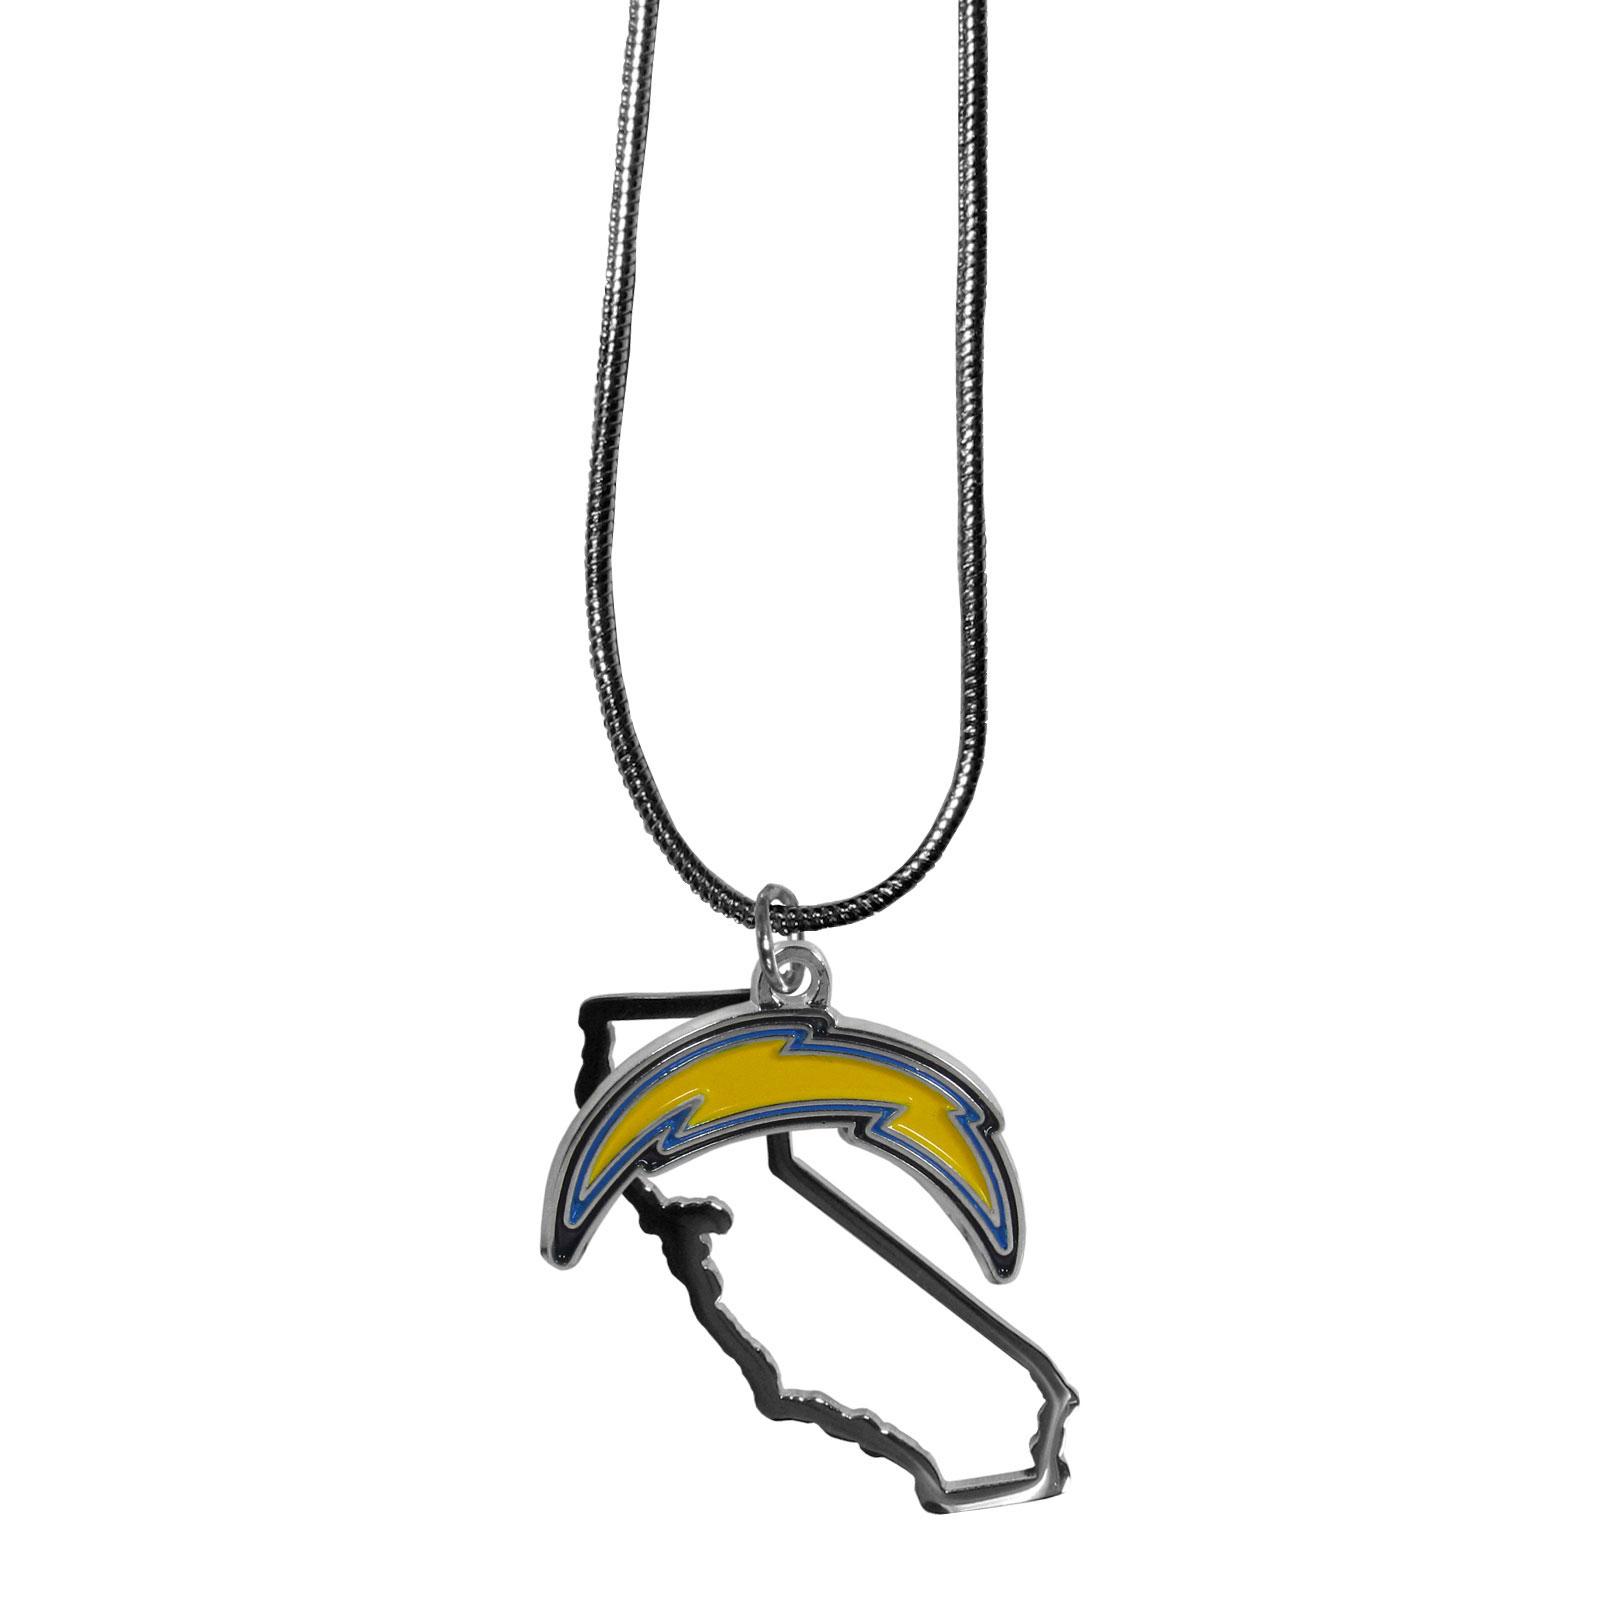 Los Angeles Chargers State Charm Necklace - Get in on the trend! State themes are a trend that just keeps getting more popular and these necklaces take the state style and give it a sporty twist with a Los Angeles Chargers added to the state outline charm. The come on a snake chain that is 22 inches long.